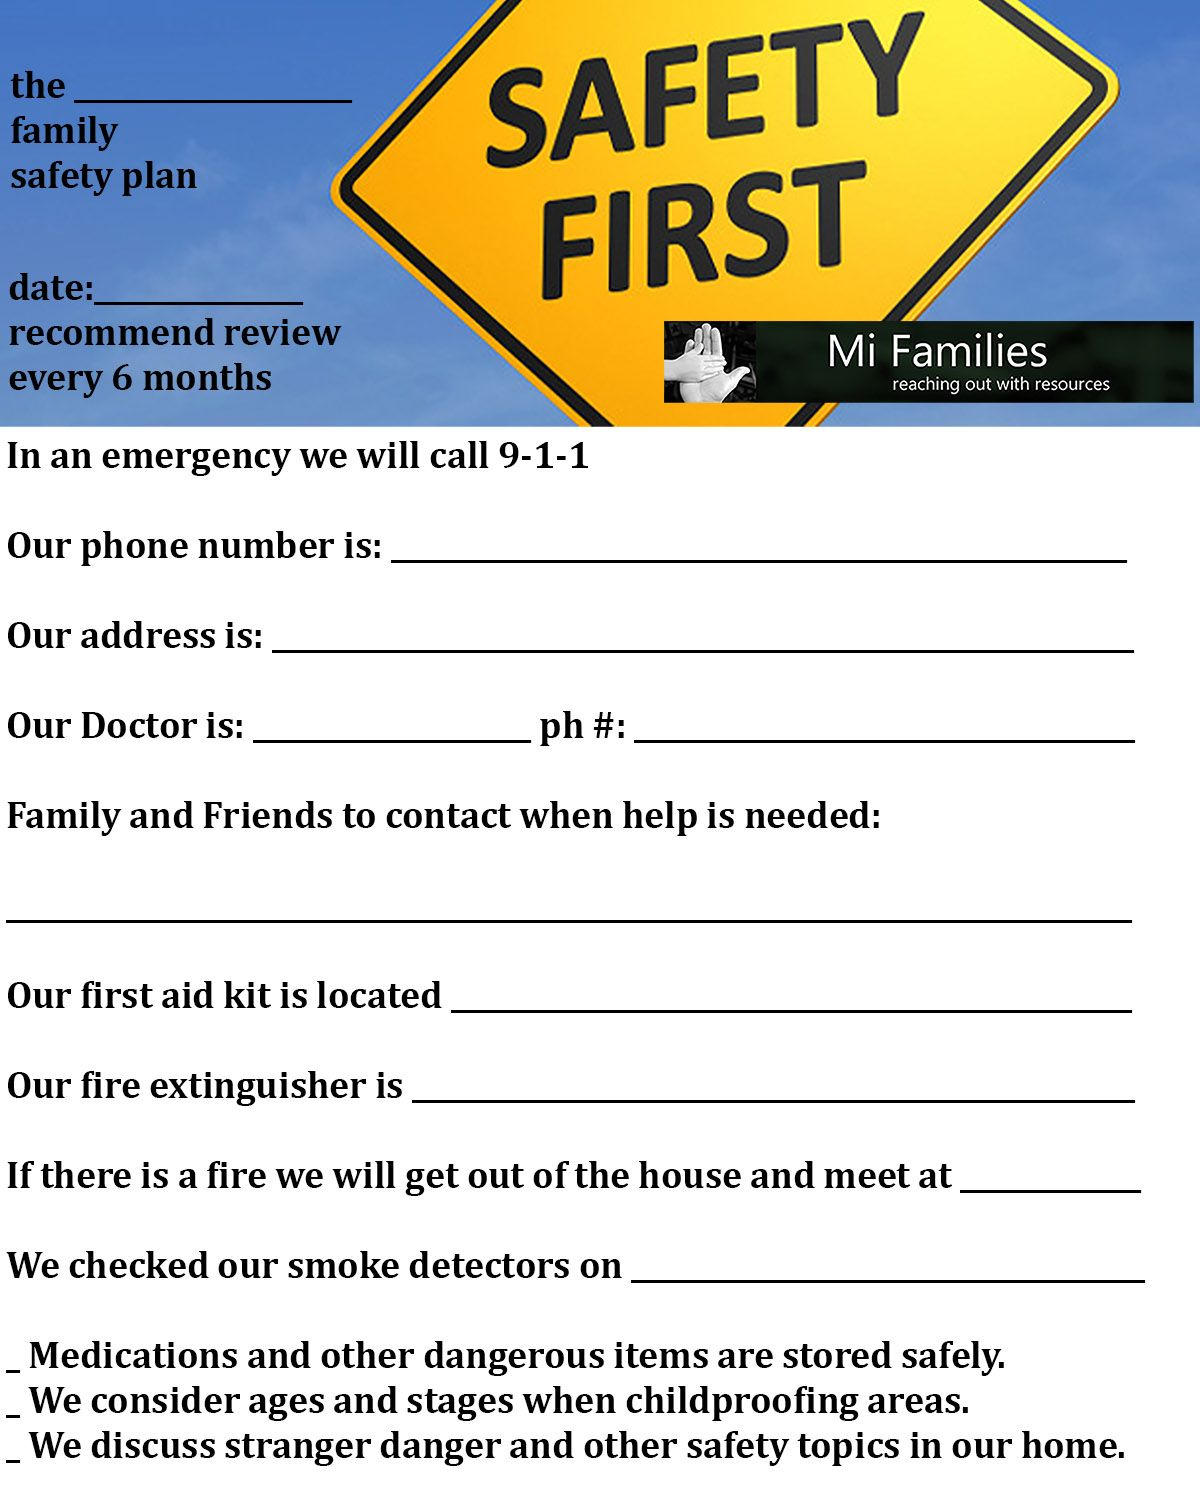 Worksheets First Aid Worksheets For Kids printable worksheet for families click image healthy safety article w